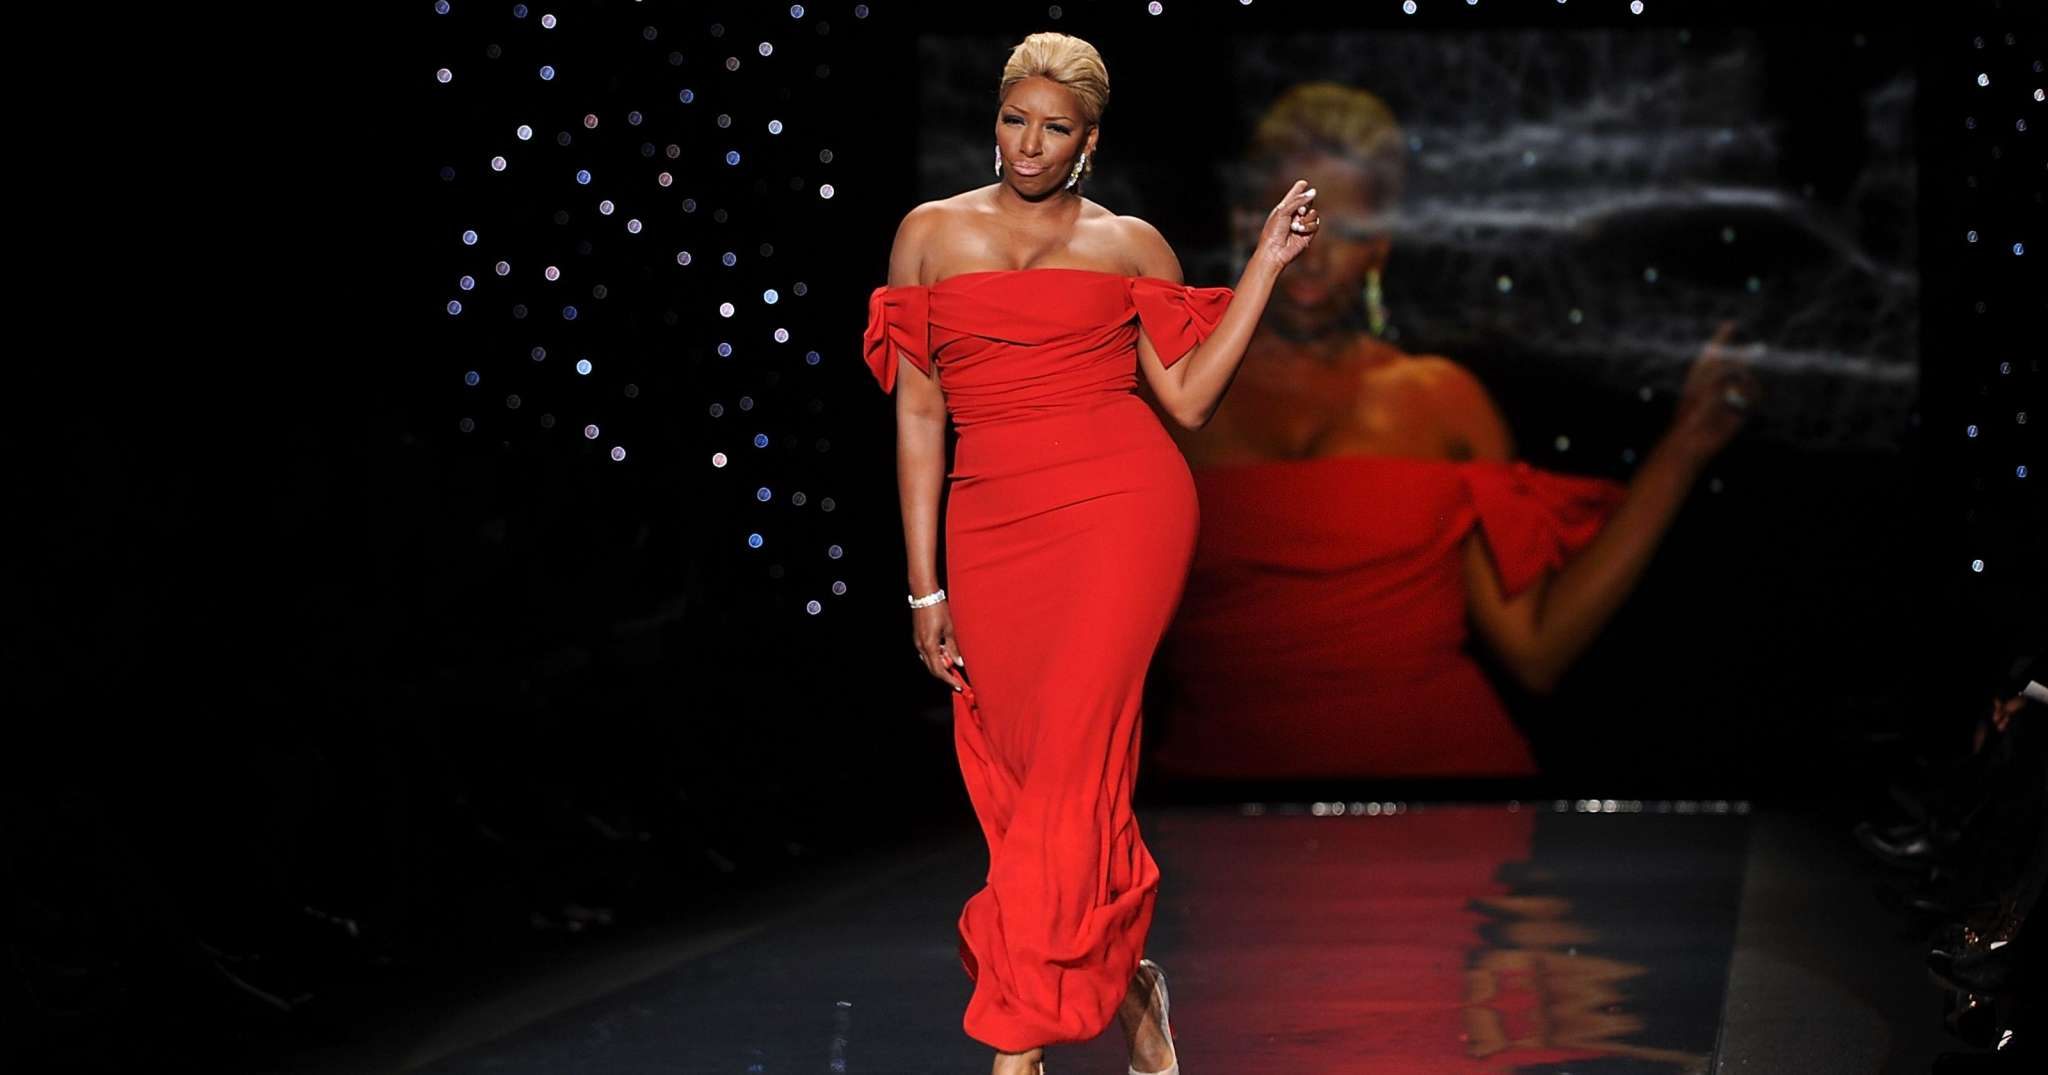 NeNe Leakes Looks Glamorous In Her Latest Photos - Fans Say She Should Host Wendy Williams' Show